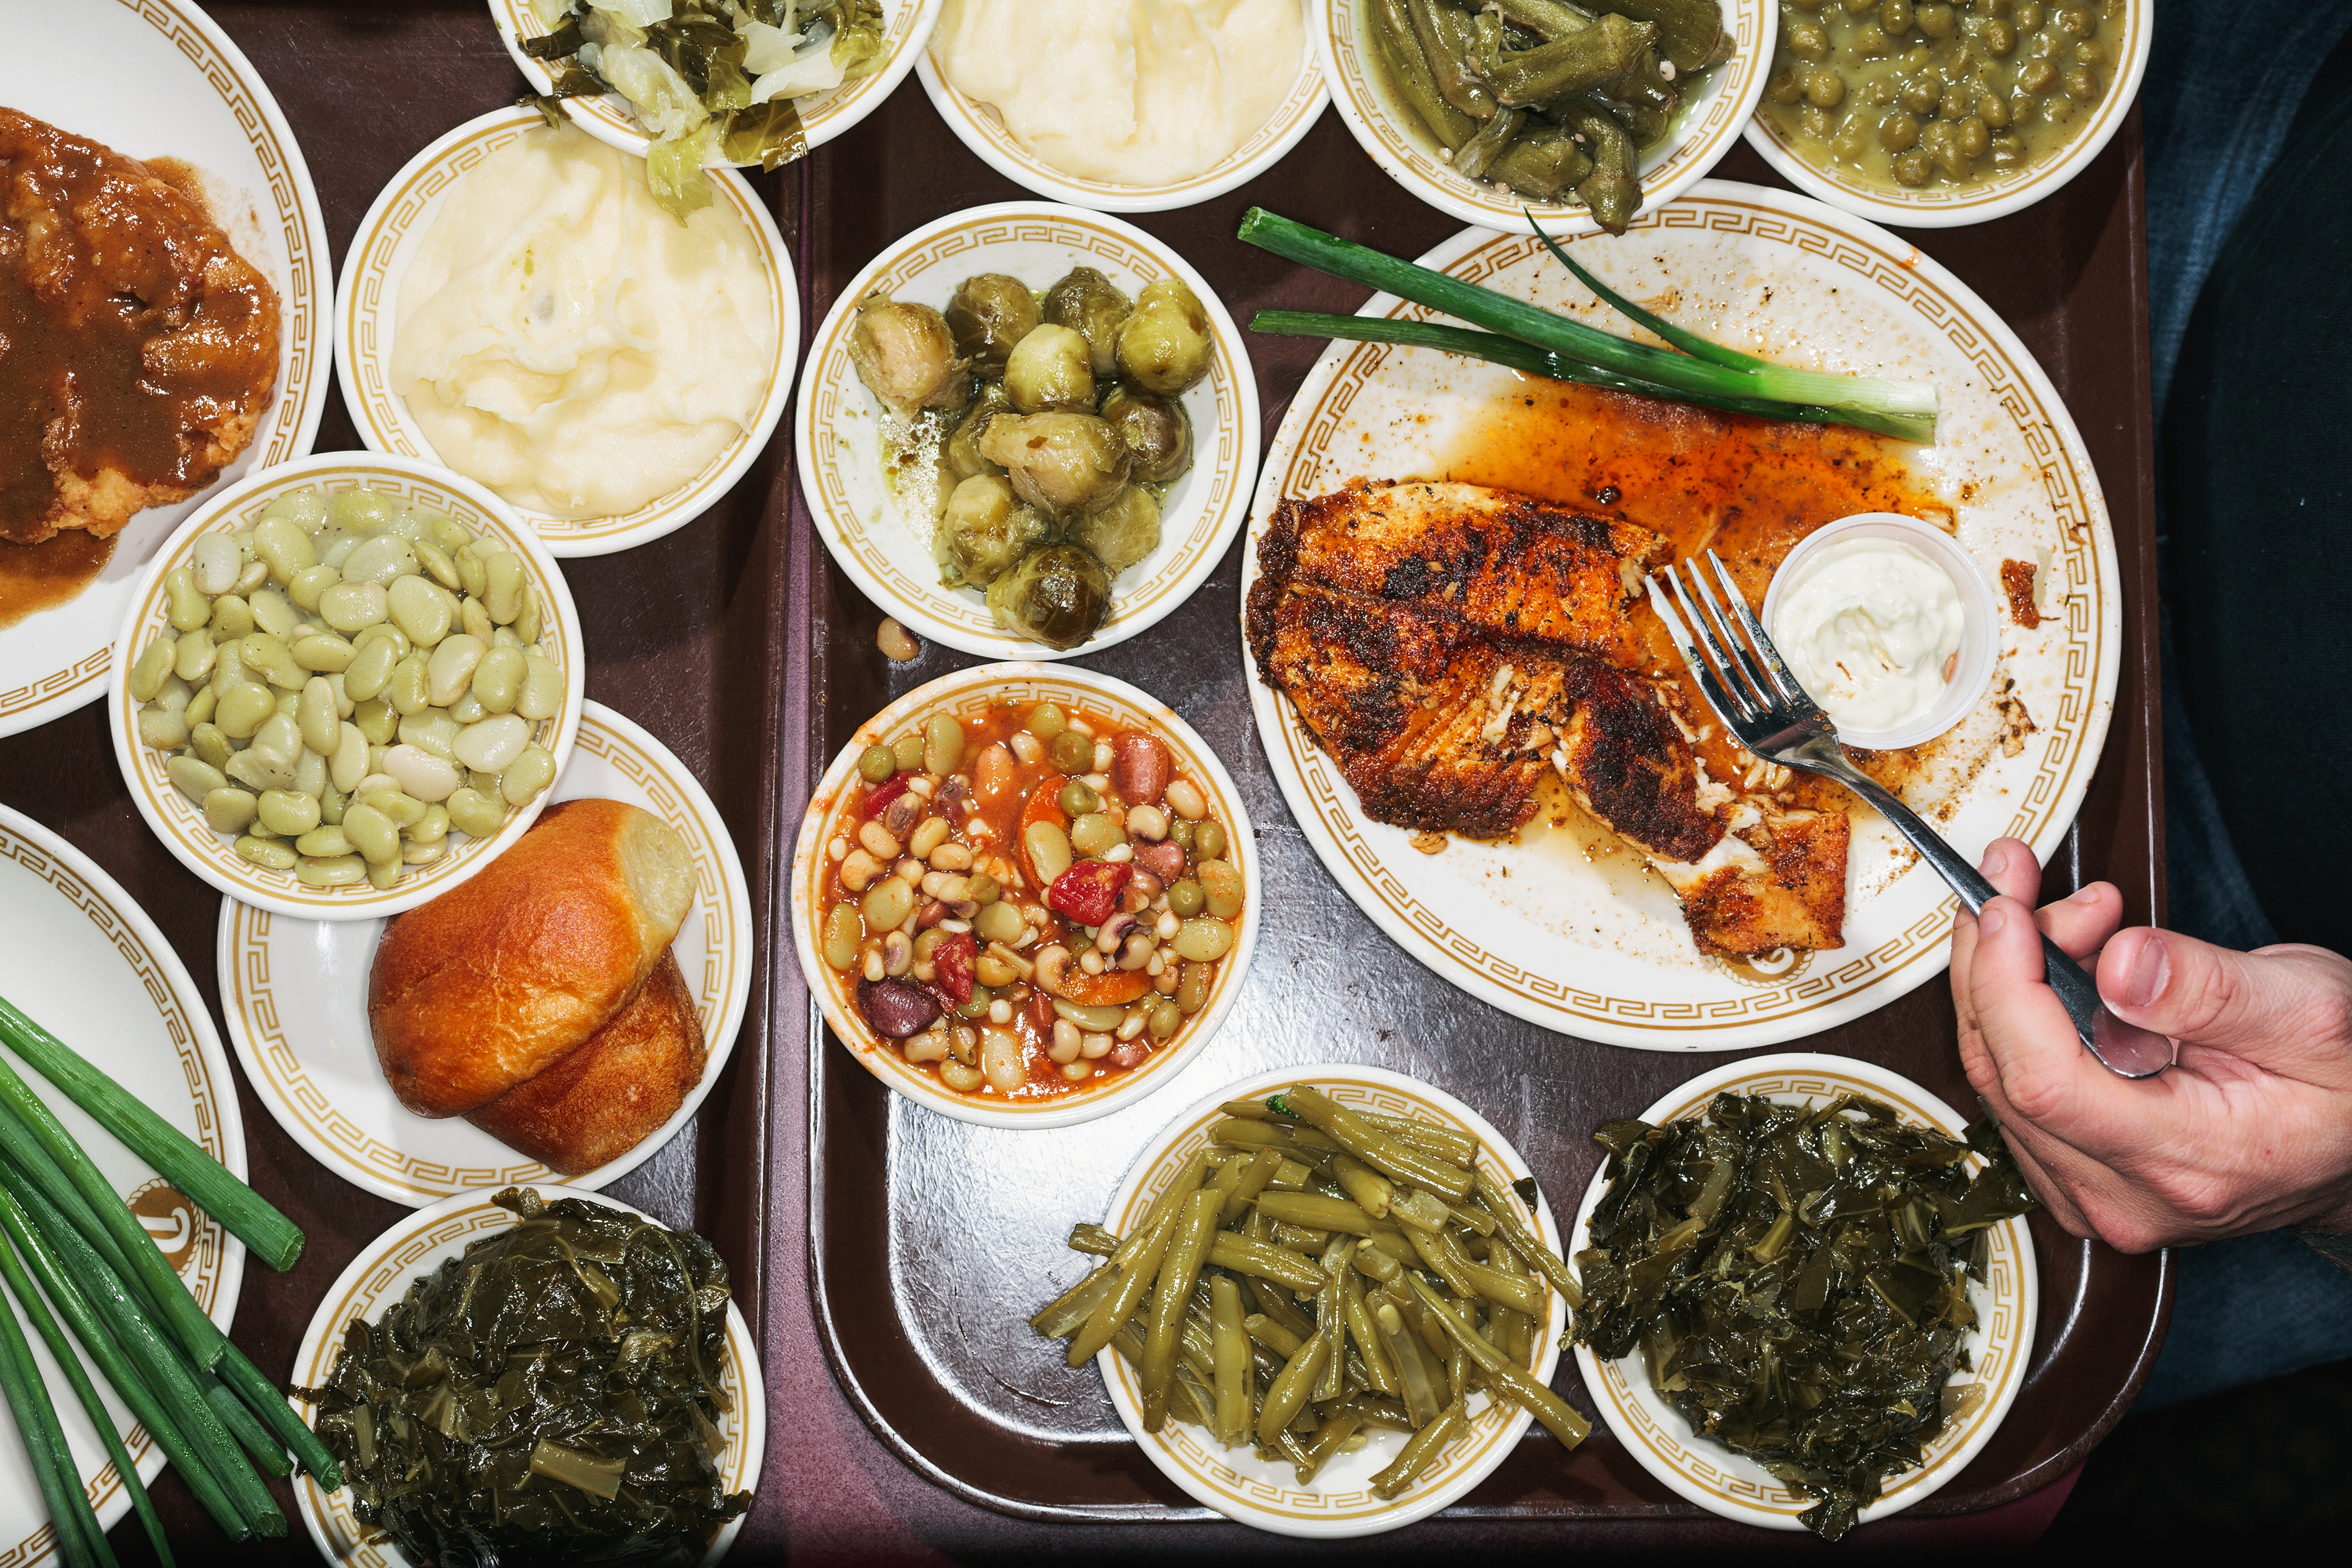 Catfish with a selection of sides (including large lima beans, fresh green beans, collard greens, boiled cabbage, fresh mashed potatoes and brussels sprouts) from the daily cafeteria menu at Niki's West in Birmingham, Ala.